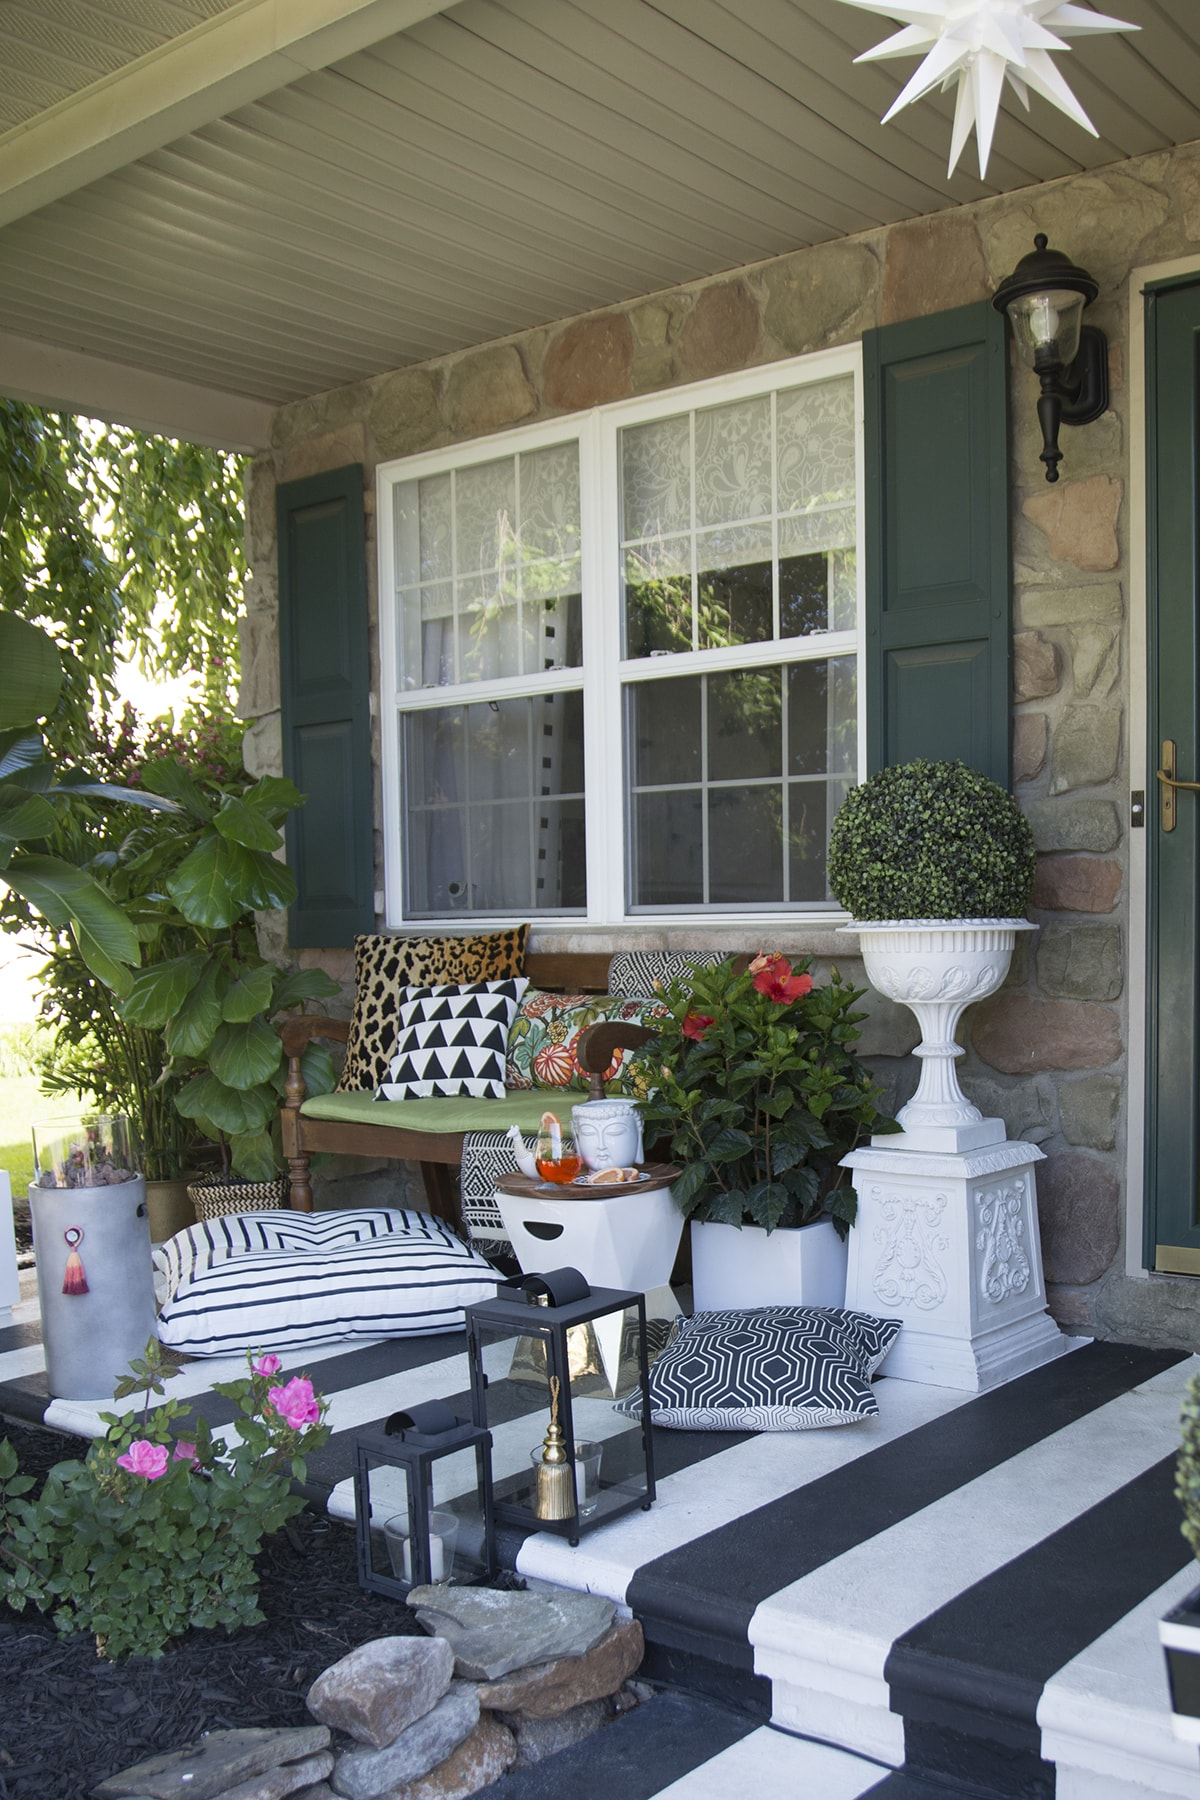 Summer In Style Outdoor Edition: Tropical, black and white ... on Black And White Backyard Decor  id=23144